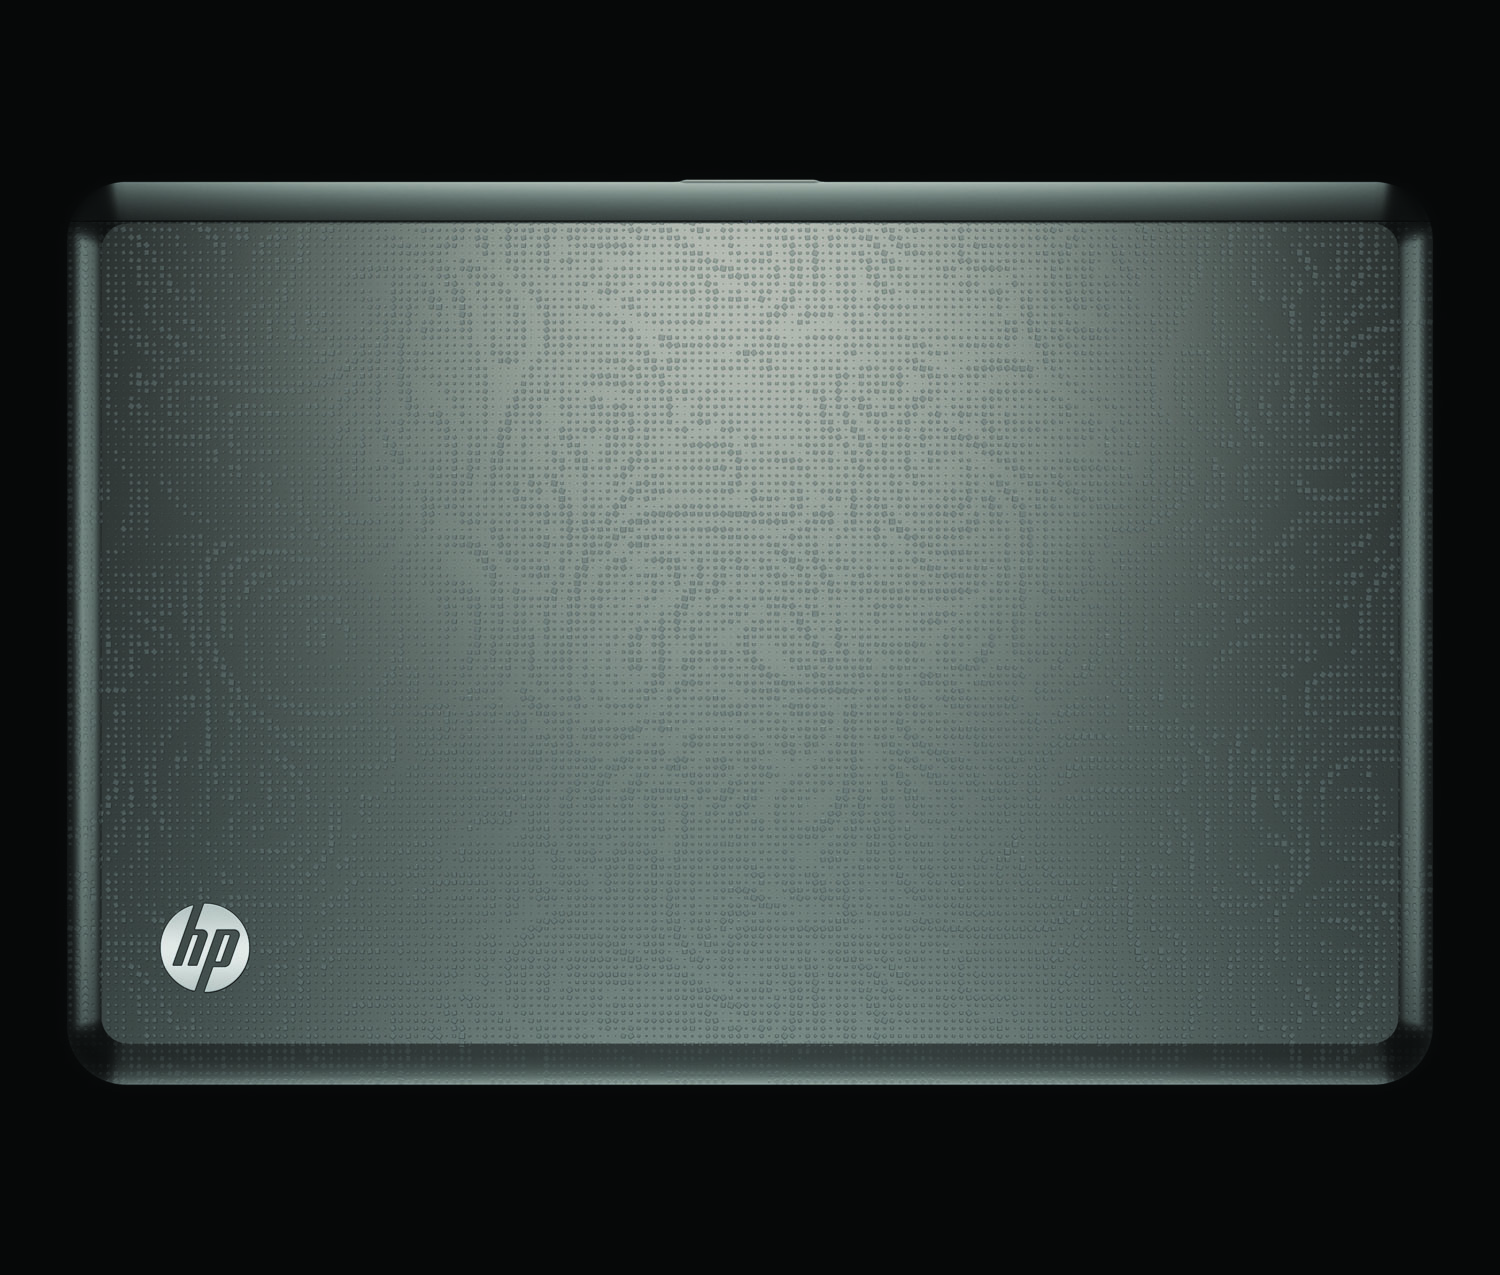 HP Envy 17, top closed on black